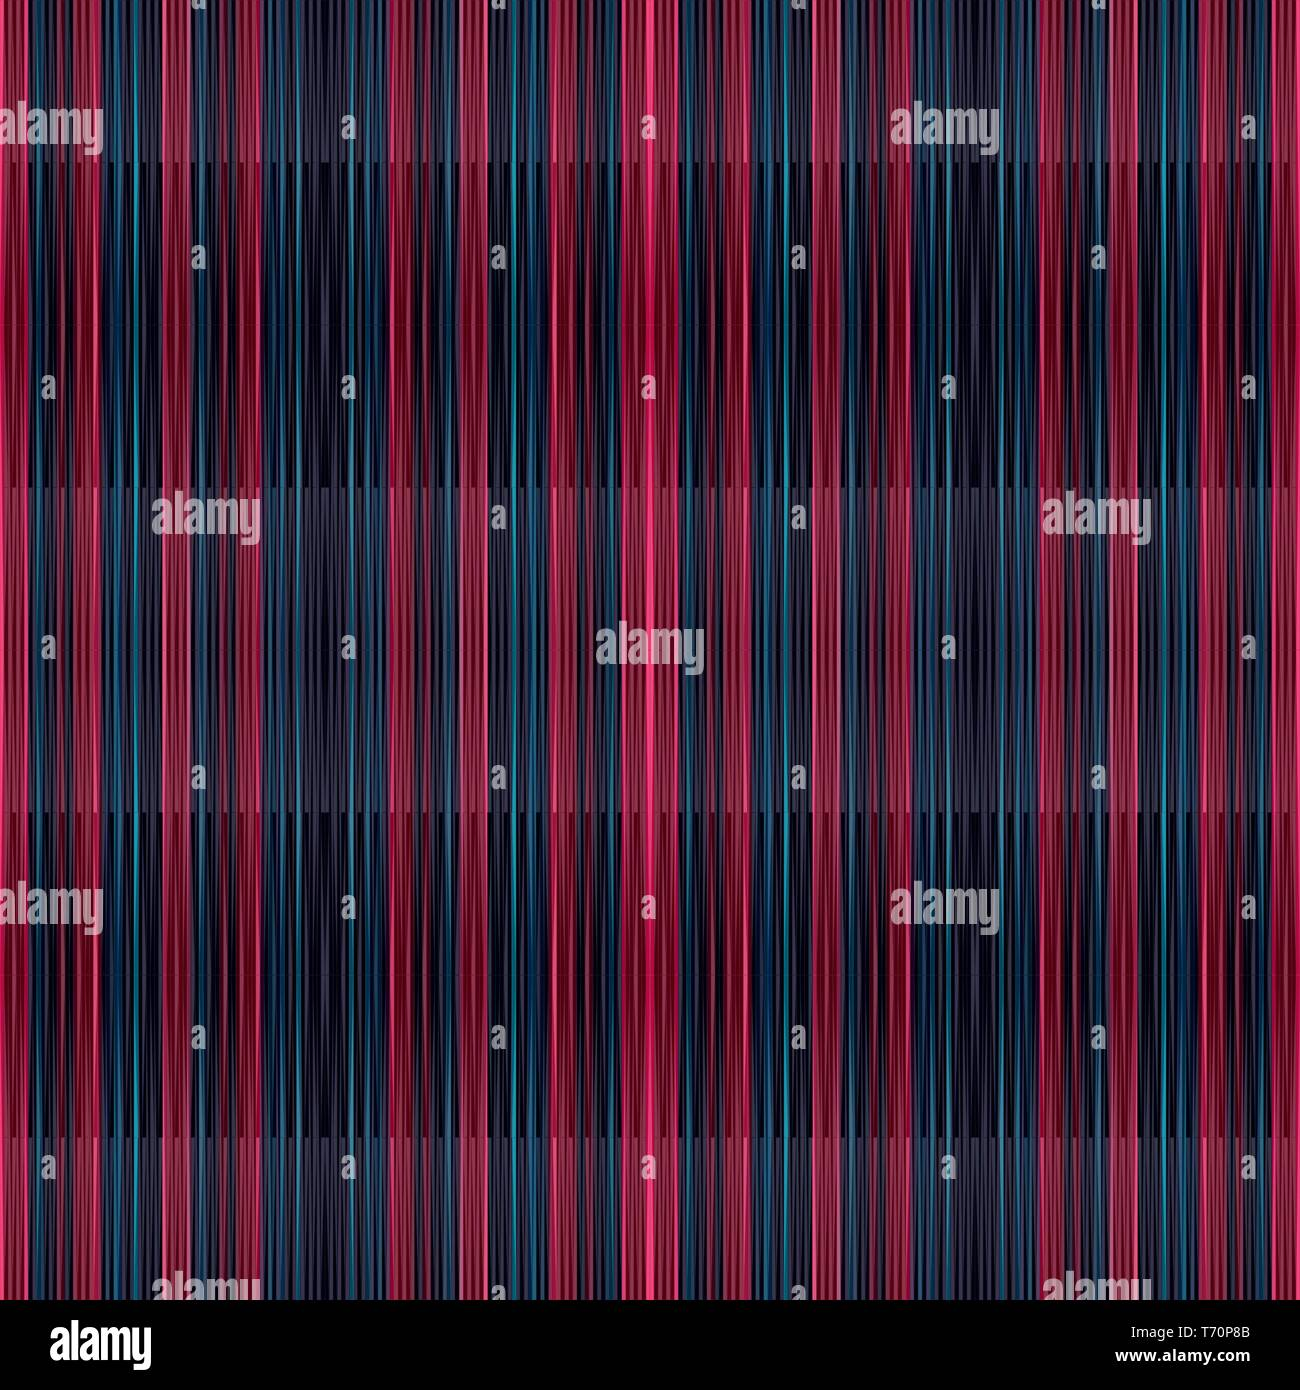 Black Indian Red And Old Mauve Color Pattern Vertical Stripes